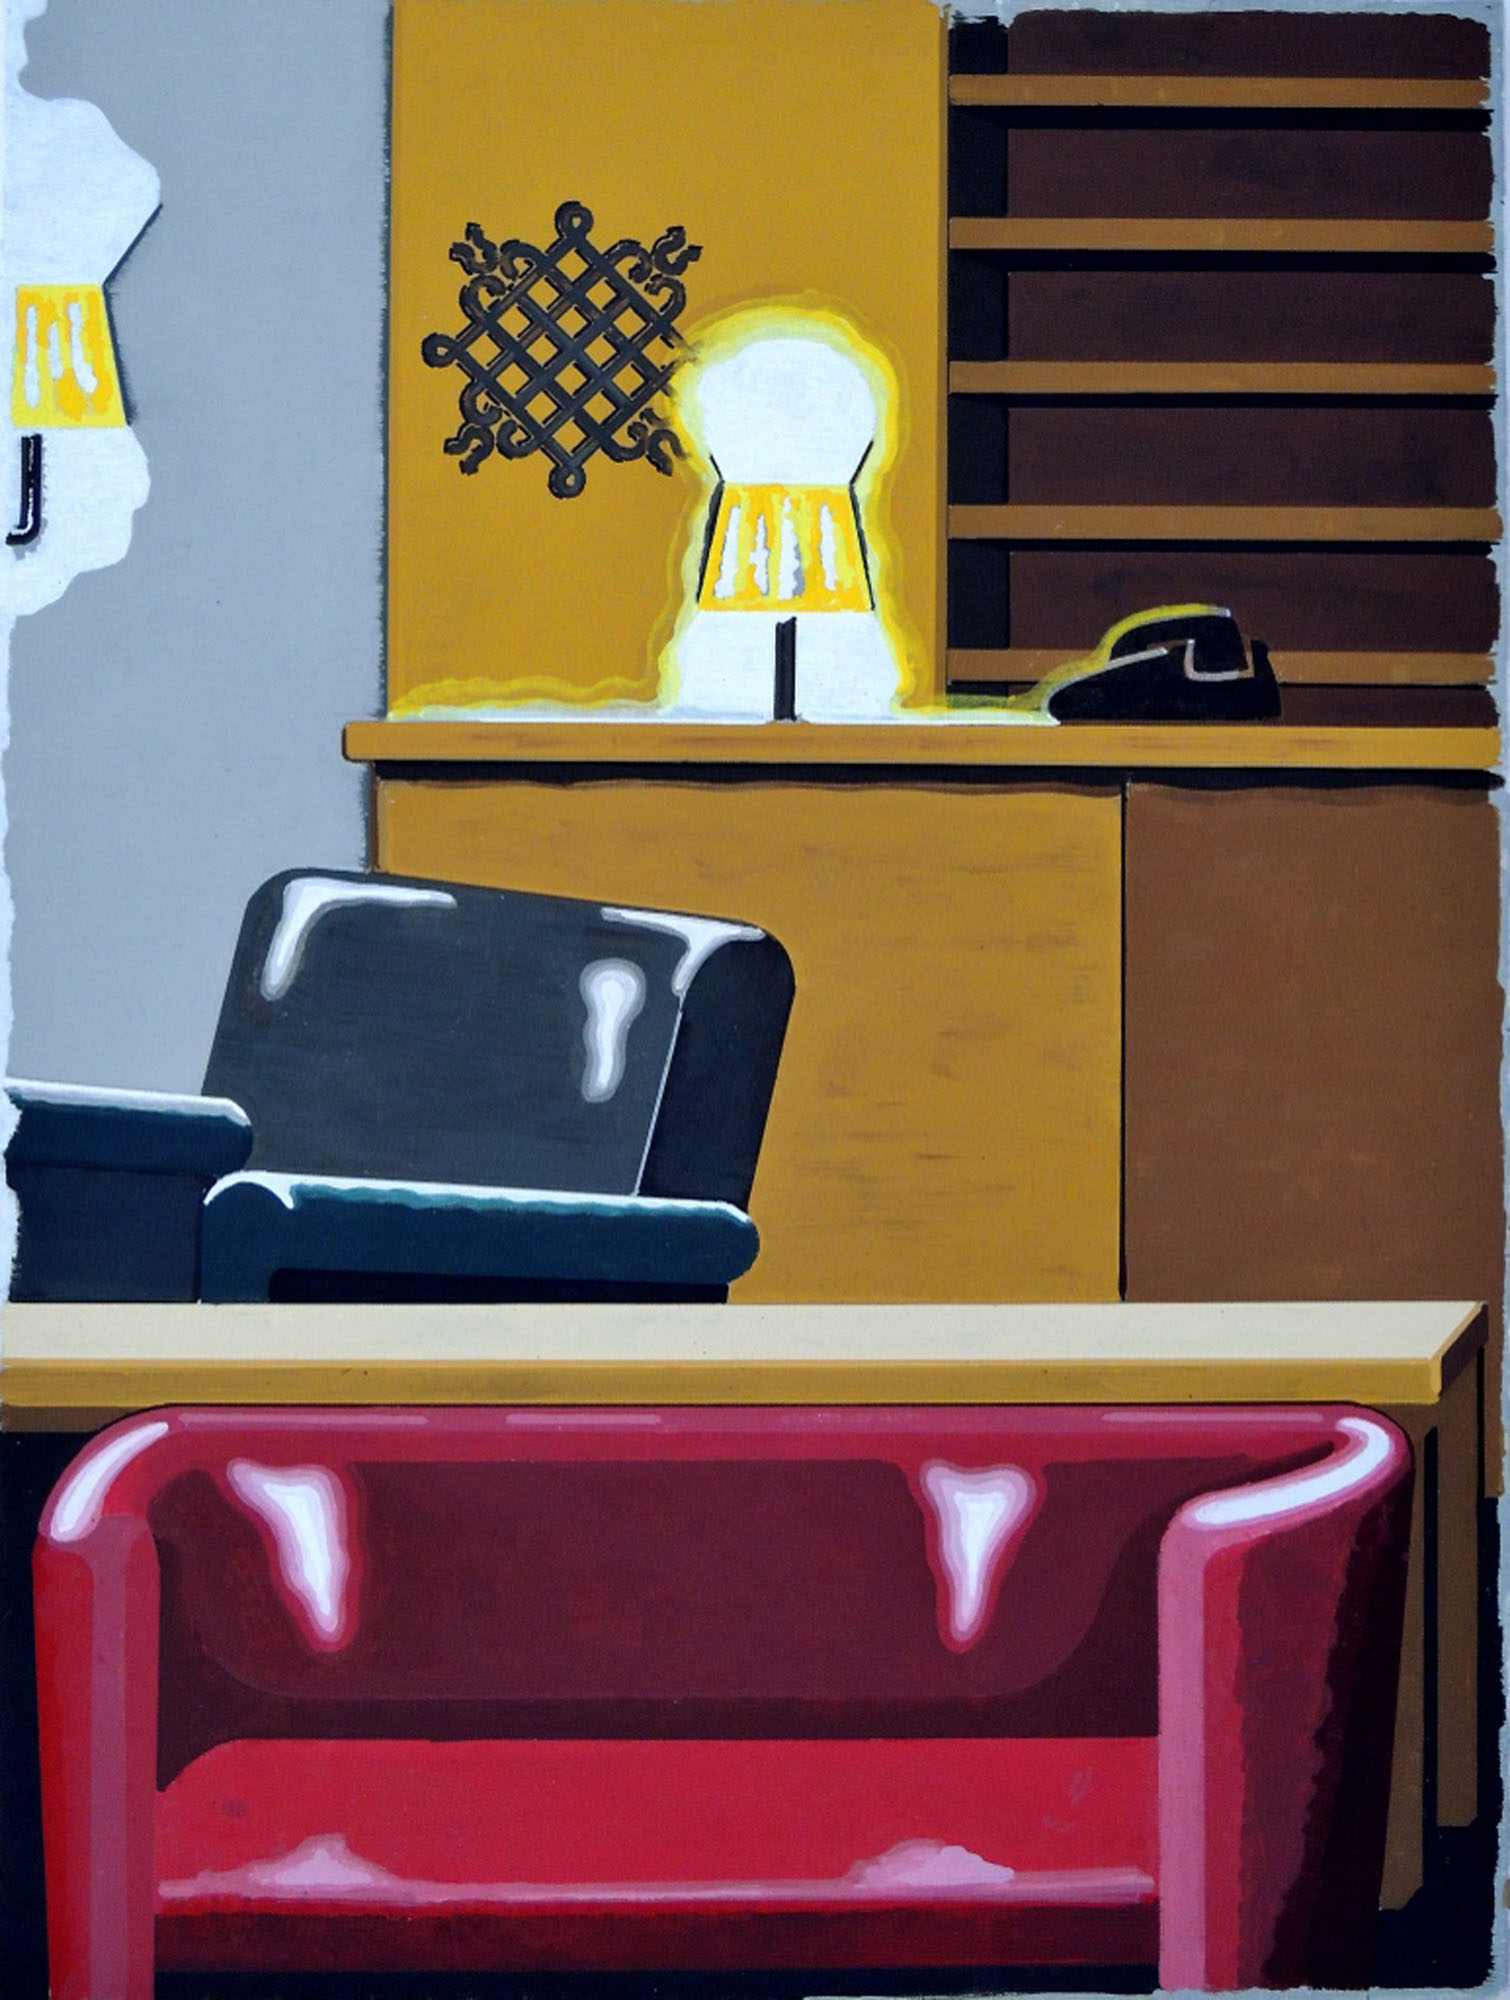 Lobby, oli on canvas, 70 x 50 cm, 2014